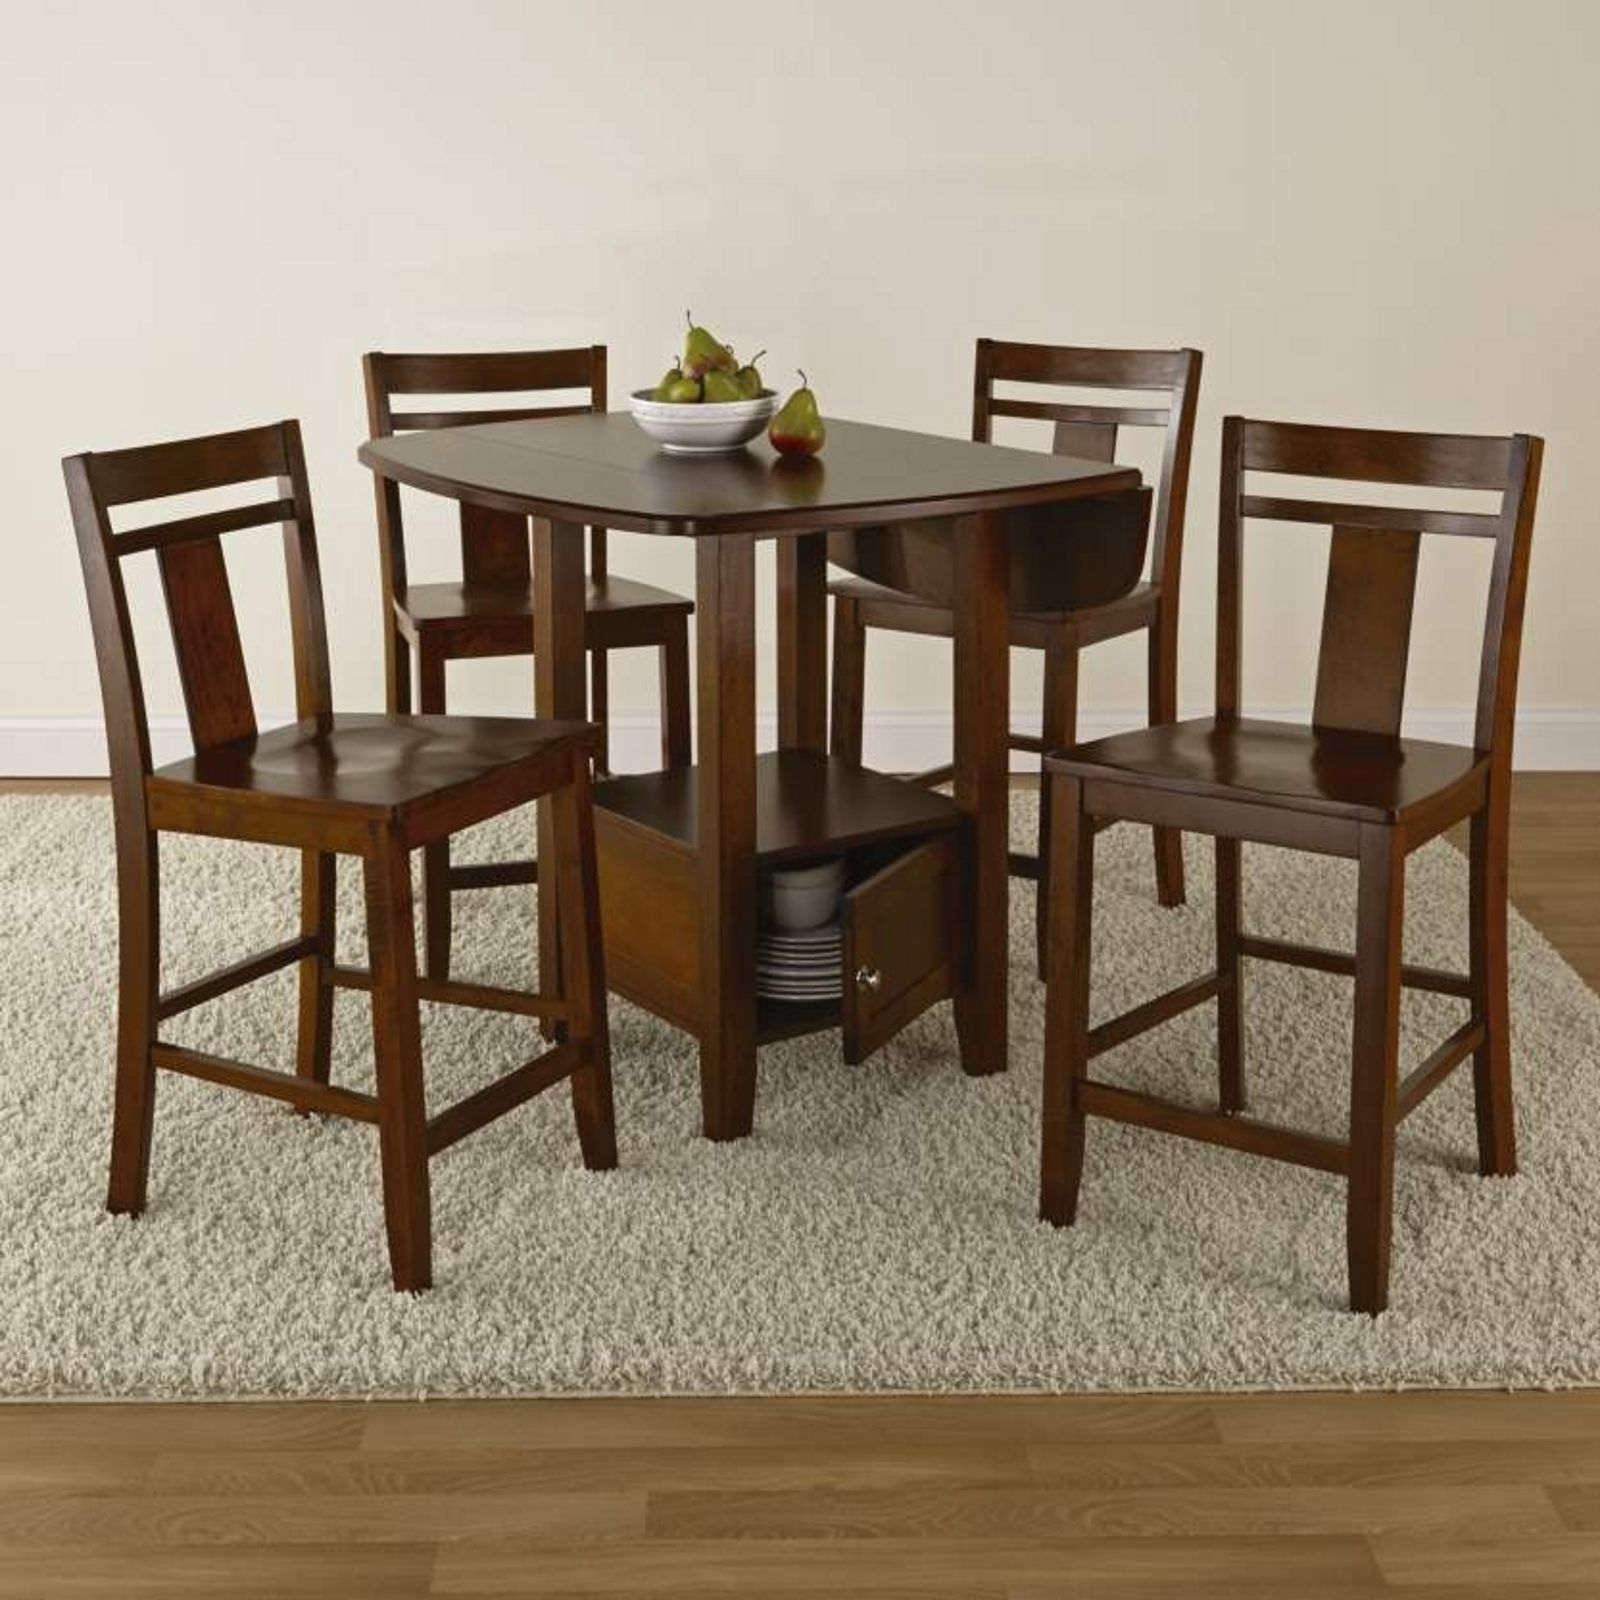 5 Pc Storage Dining Set Wel e Guests To Your Kitchen With